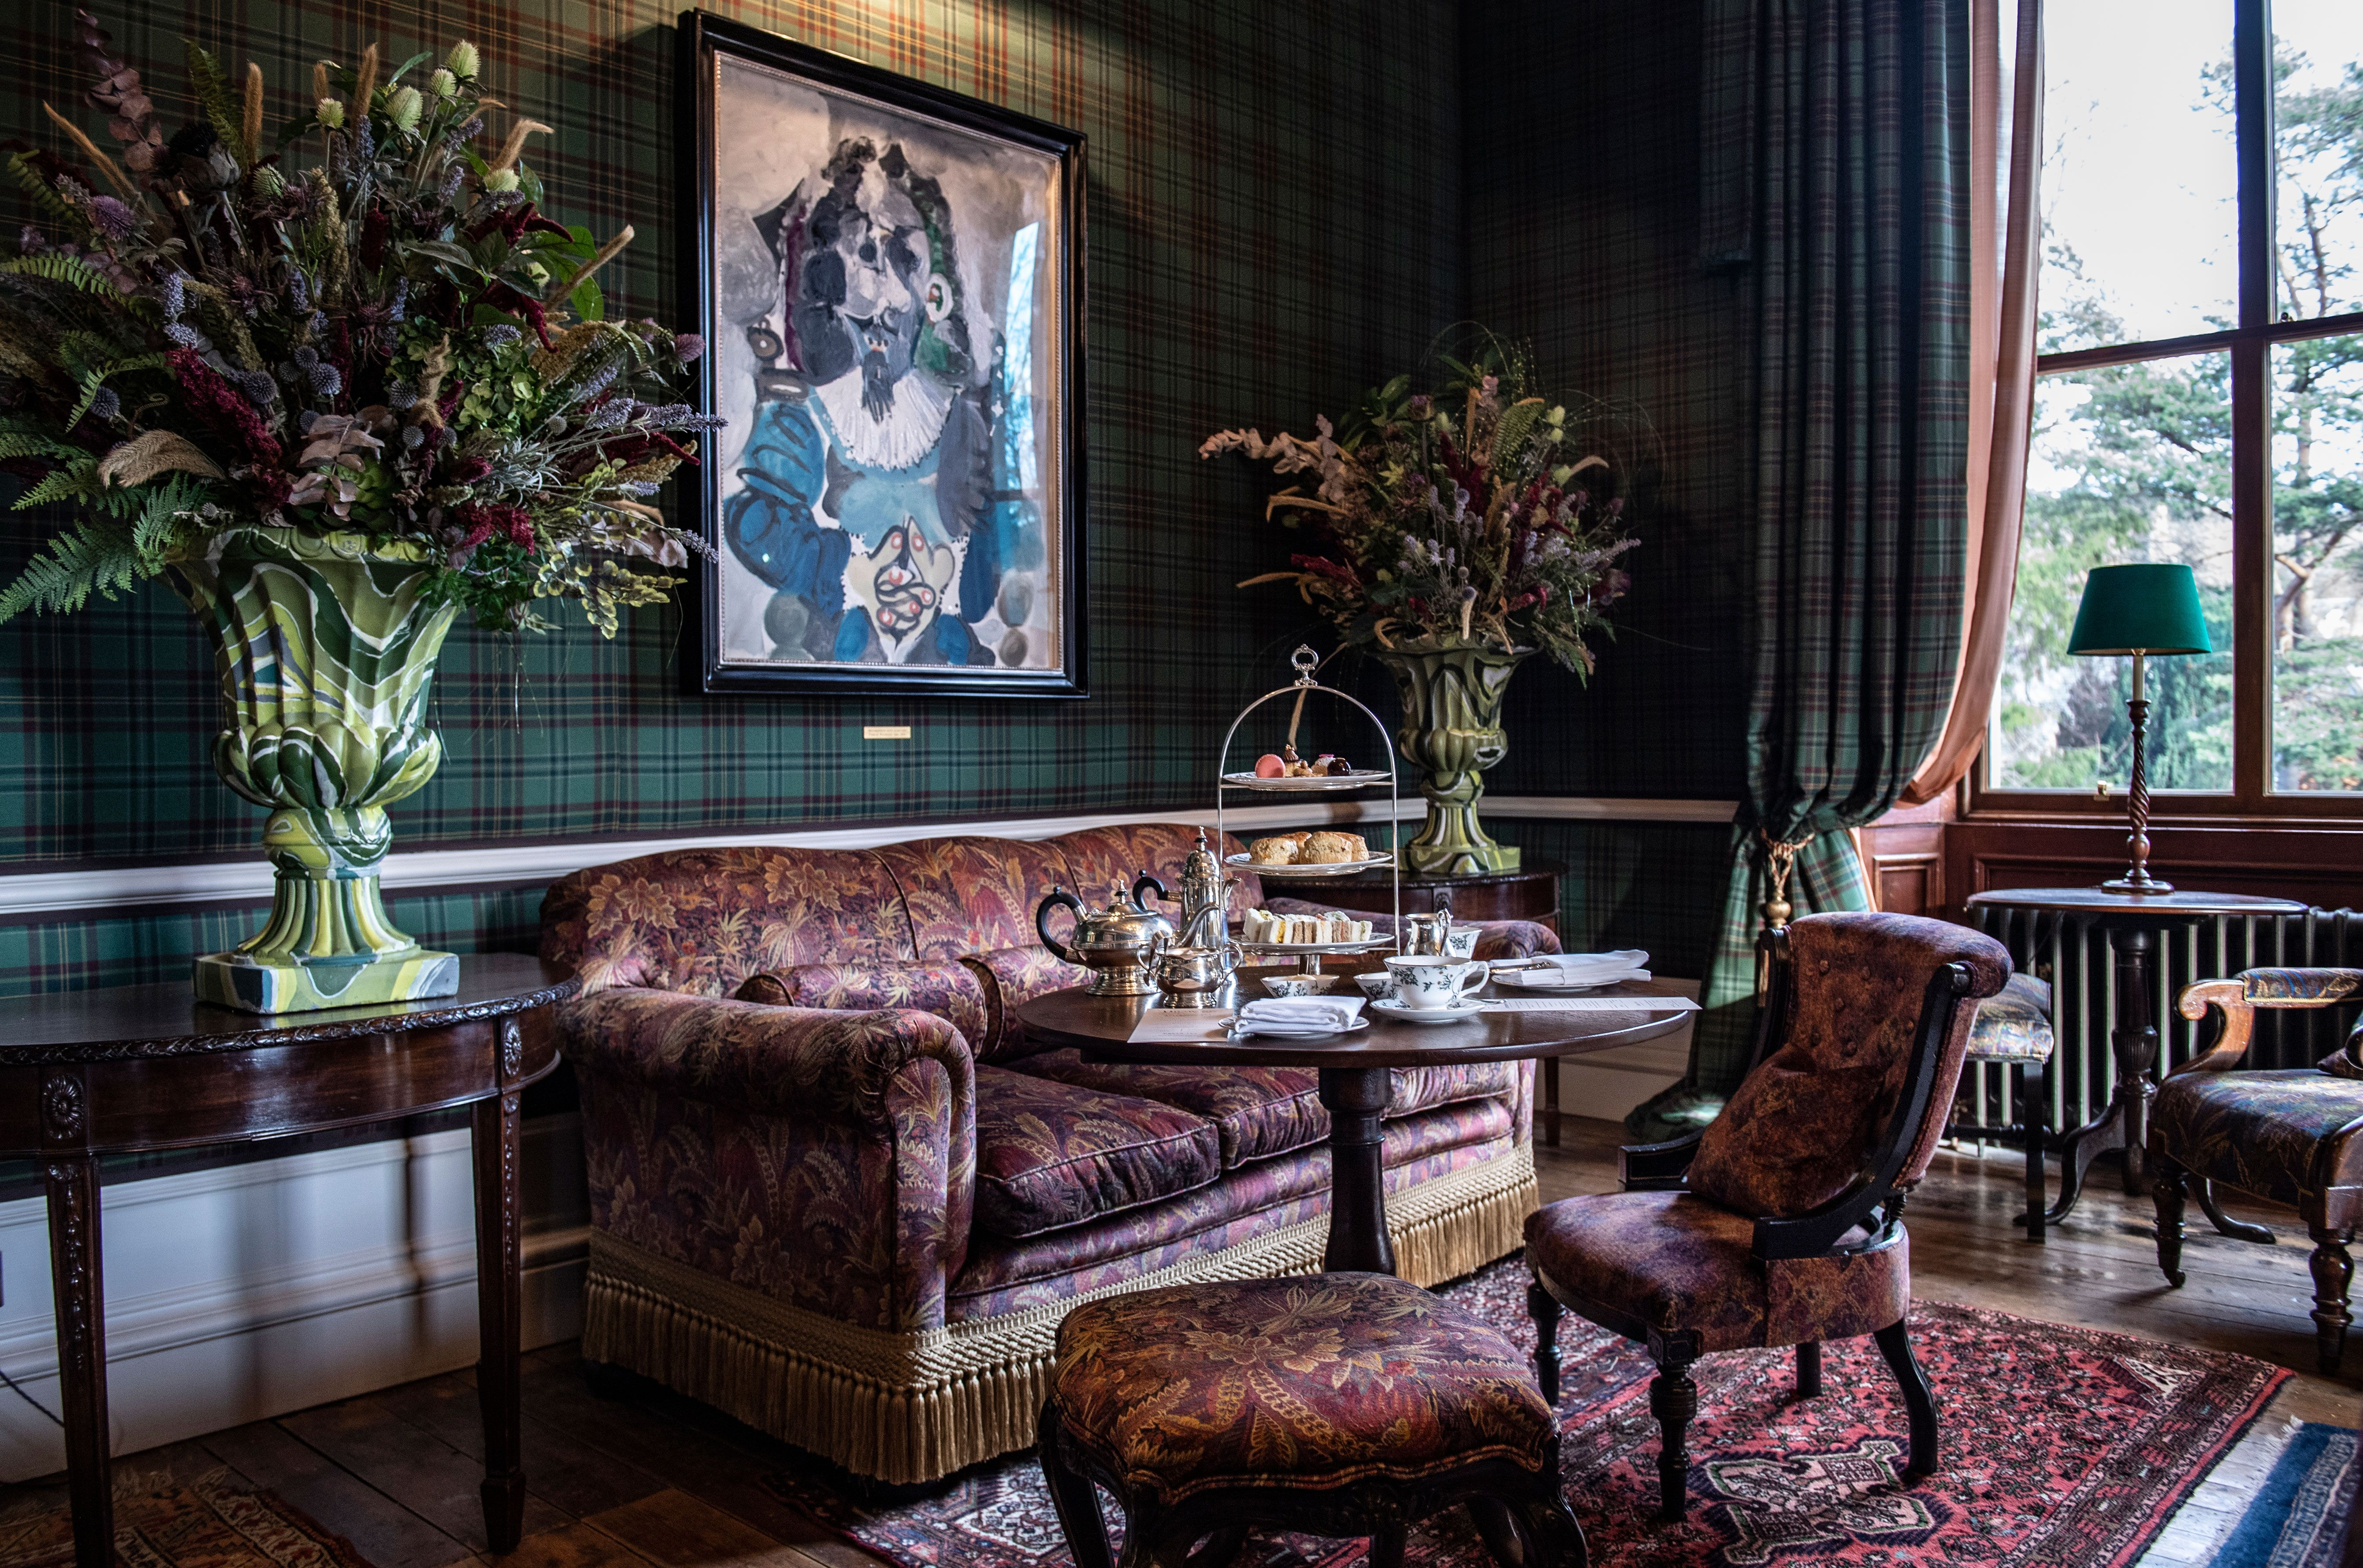 11 Hotels With the Most Amazing Art Collections